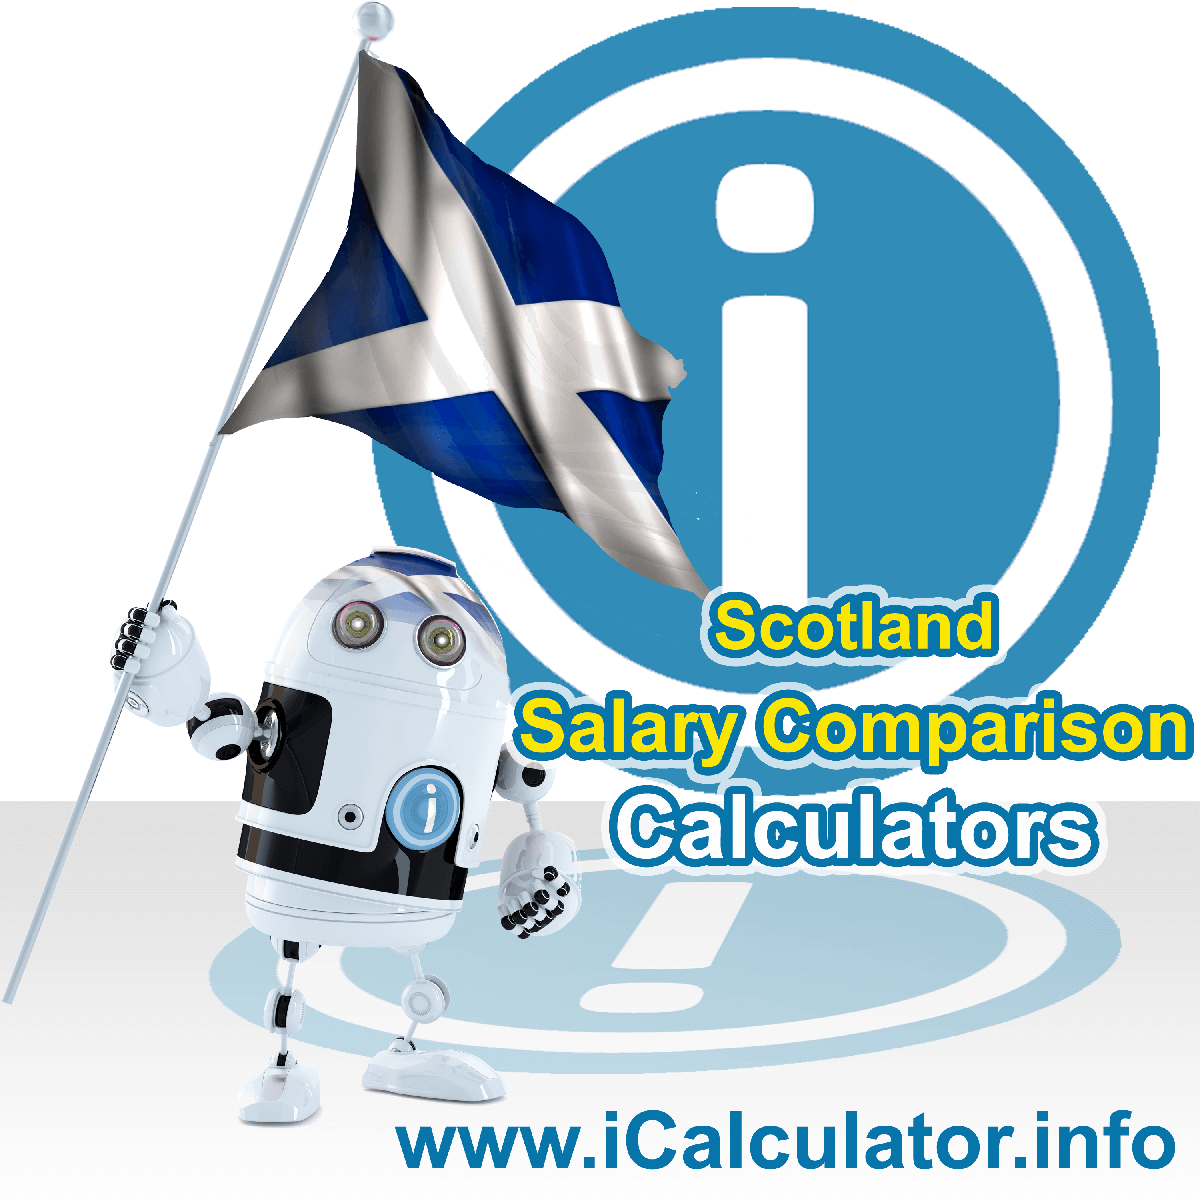 Scotland Salary Comparison Calculator. This image shows the Scotland flag and information relating to the income tax formula for the Scotland Salary Comparison Calculator